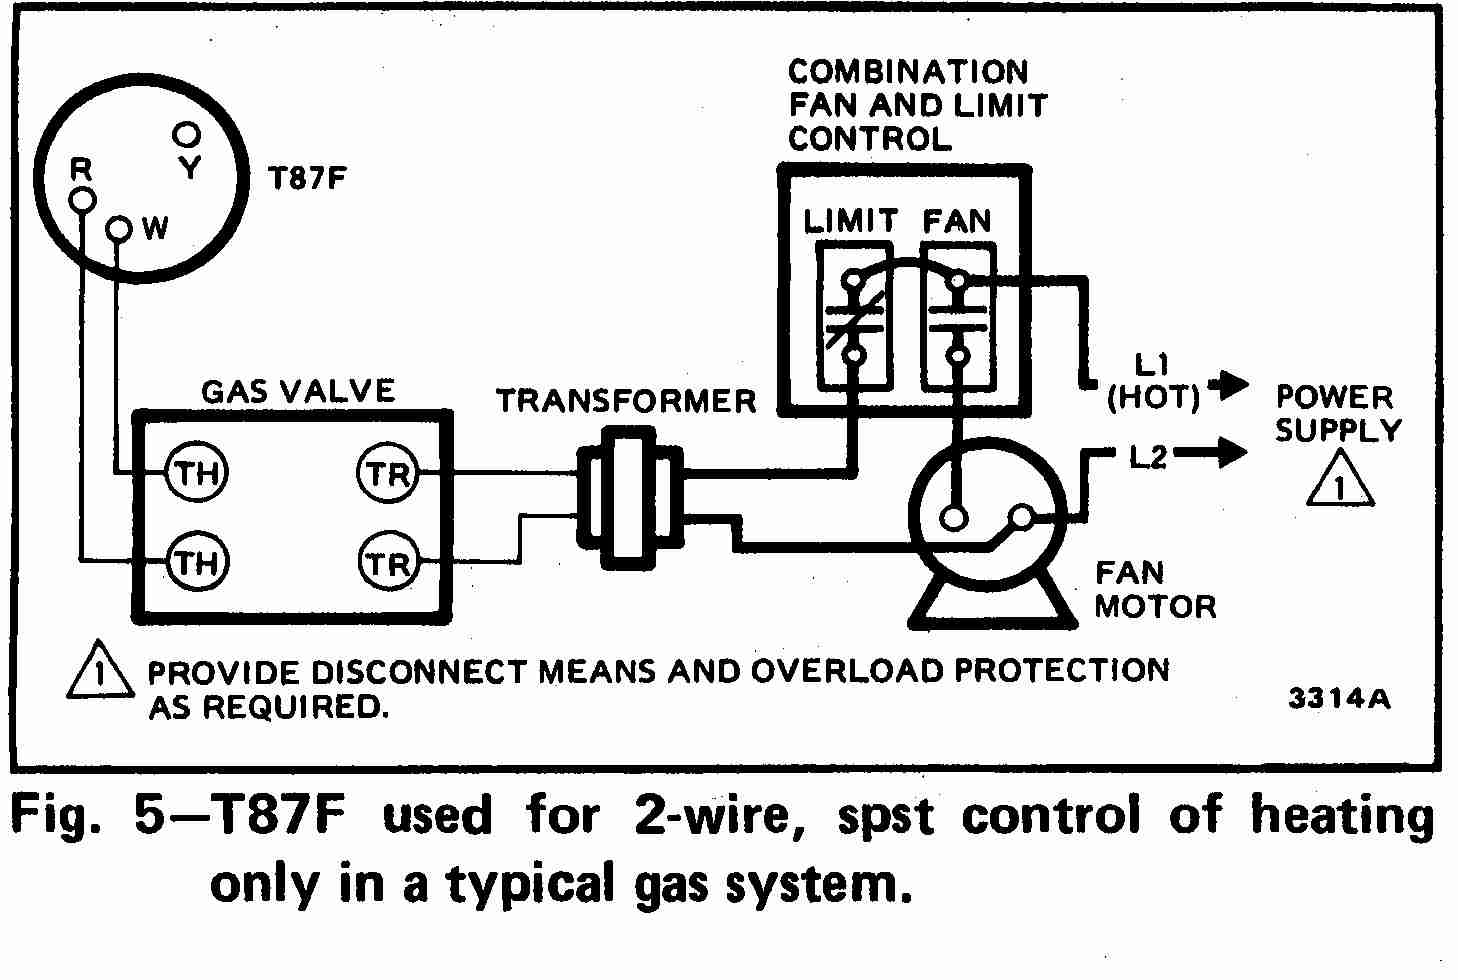 Guide To Wiring Connections For Room Thermostats Hw 2000i Inverter Diagram Honeywell T87f Thermostat 2 Wire Spst Control Of Heating Only In